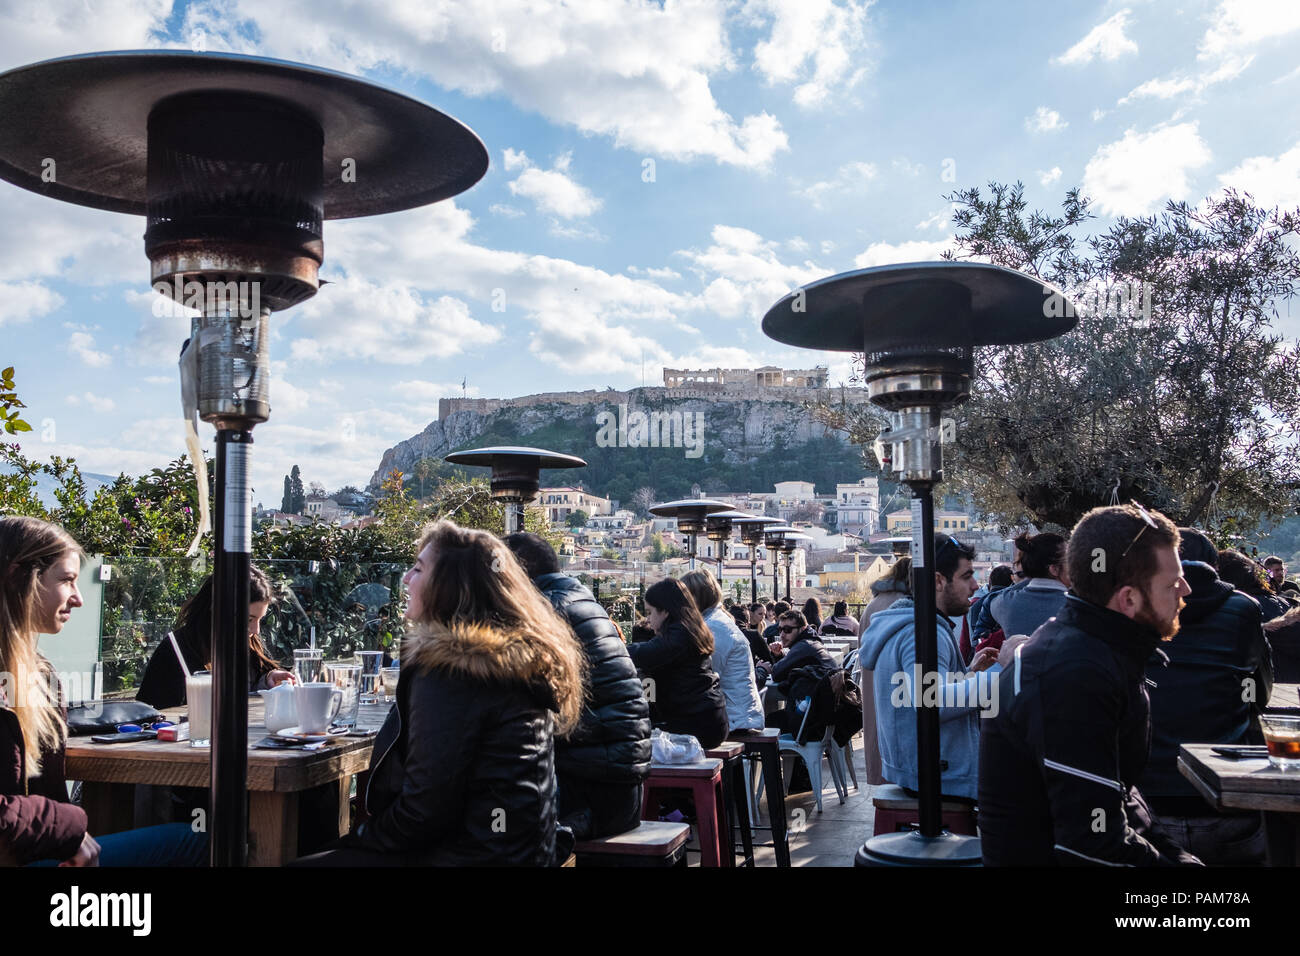 Young Athenians staying warm on a trendy rooftop city cafe with views of the Acropolis during winter, Athens, Greece, Europe. - Stock Image